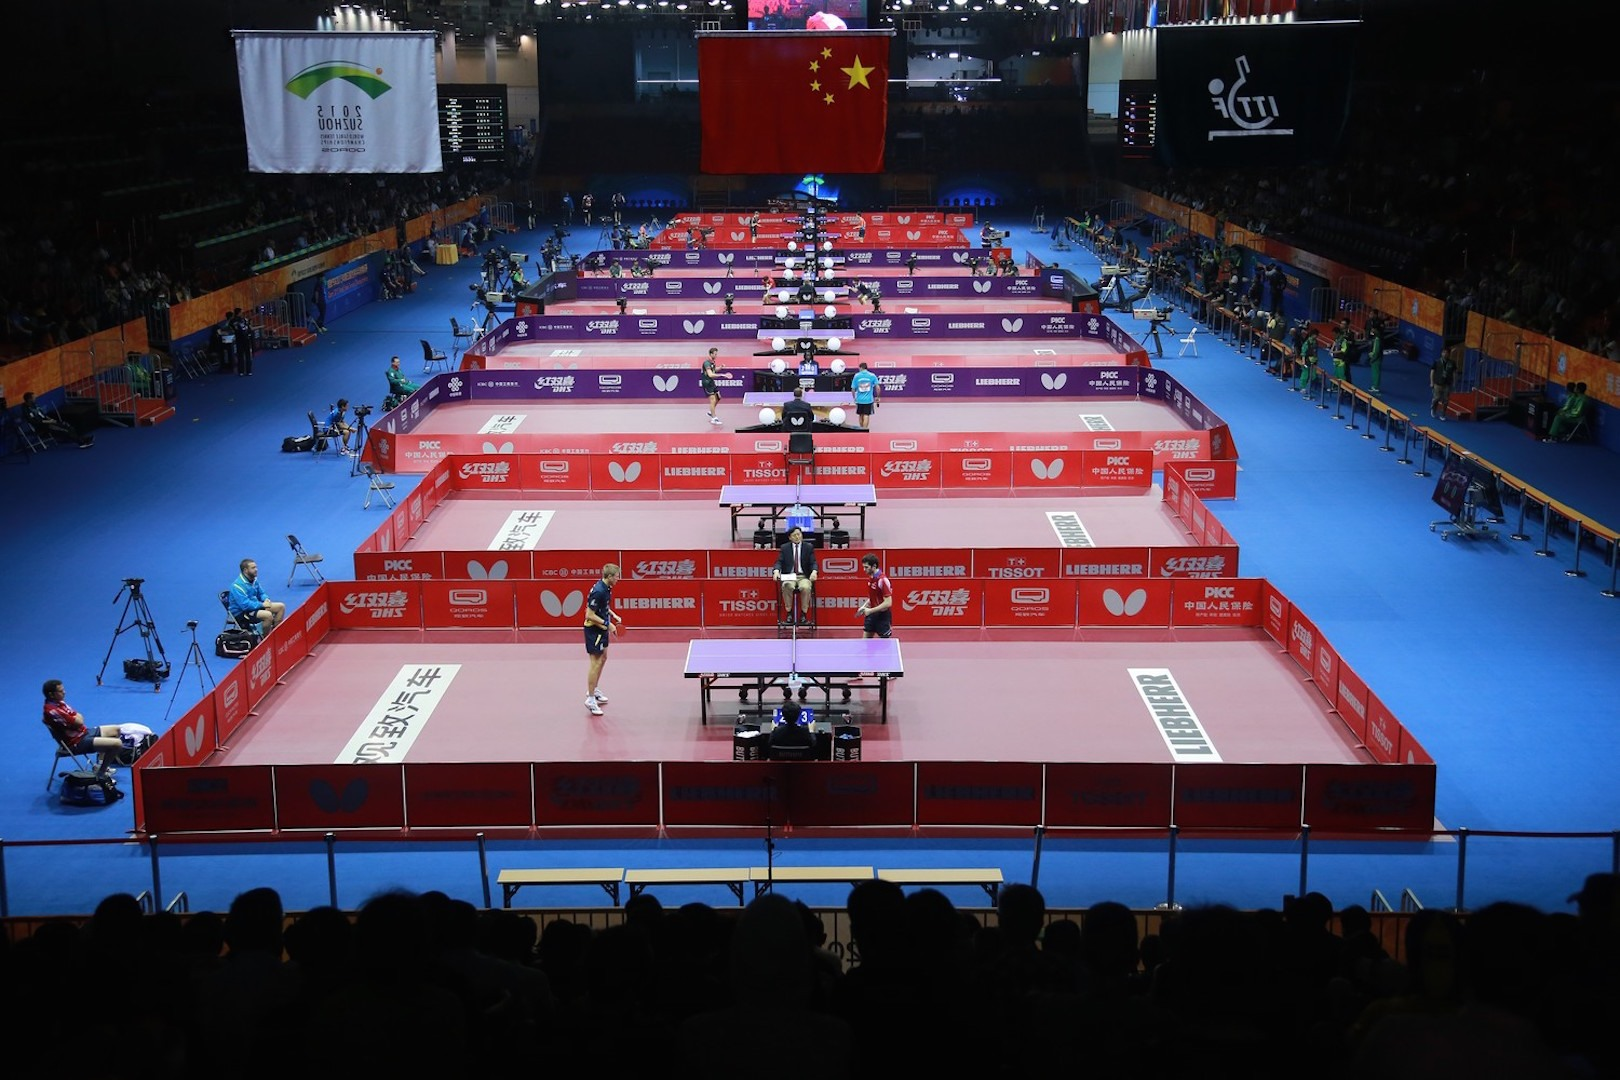 ITTF Working Group discusses strategies to promote full participation of all member nations in World Championships